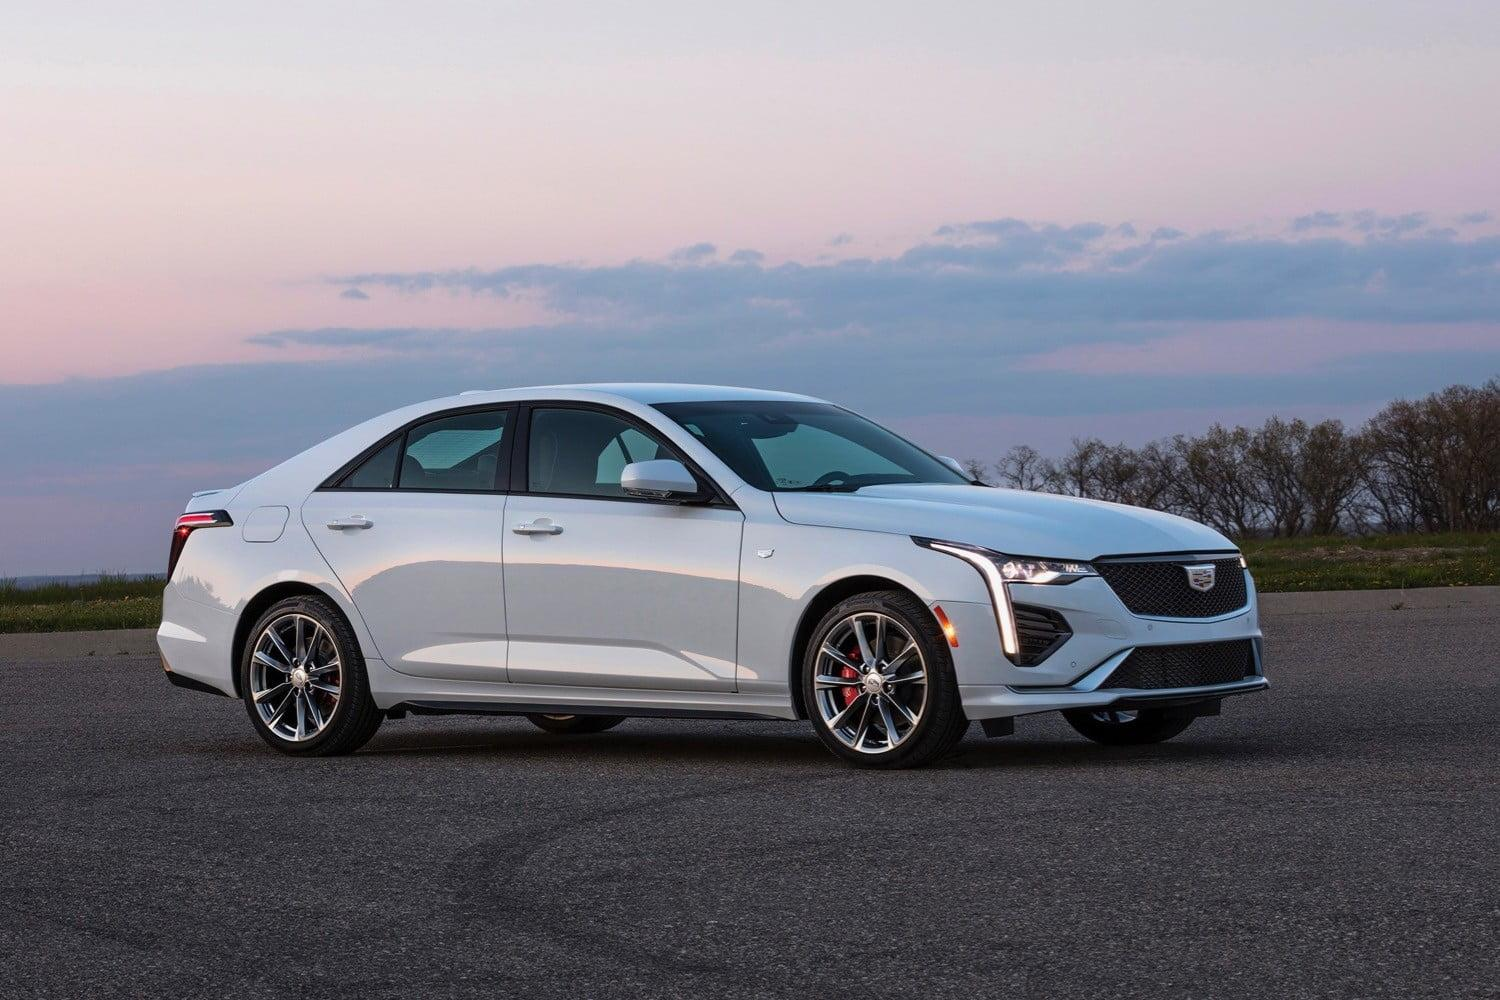 Cadillac's 2020 CT4 small sedan starts at $33,990, sporty V model tops $40,000